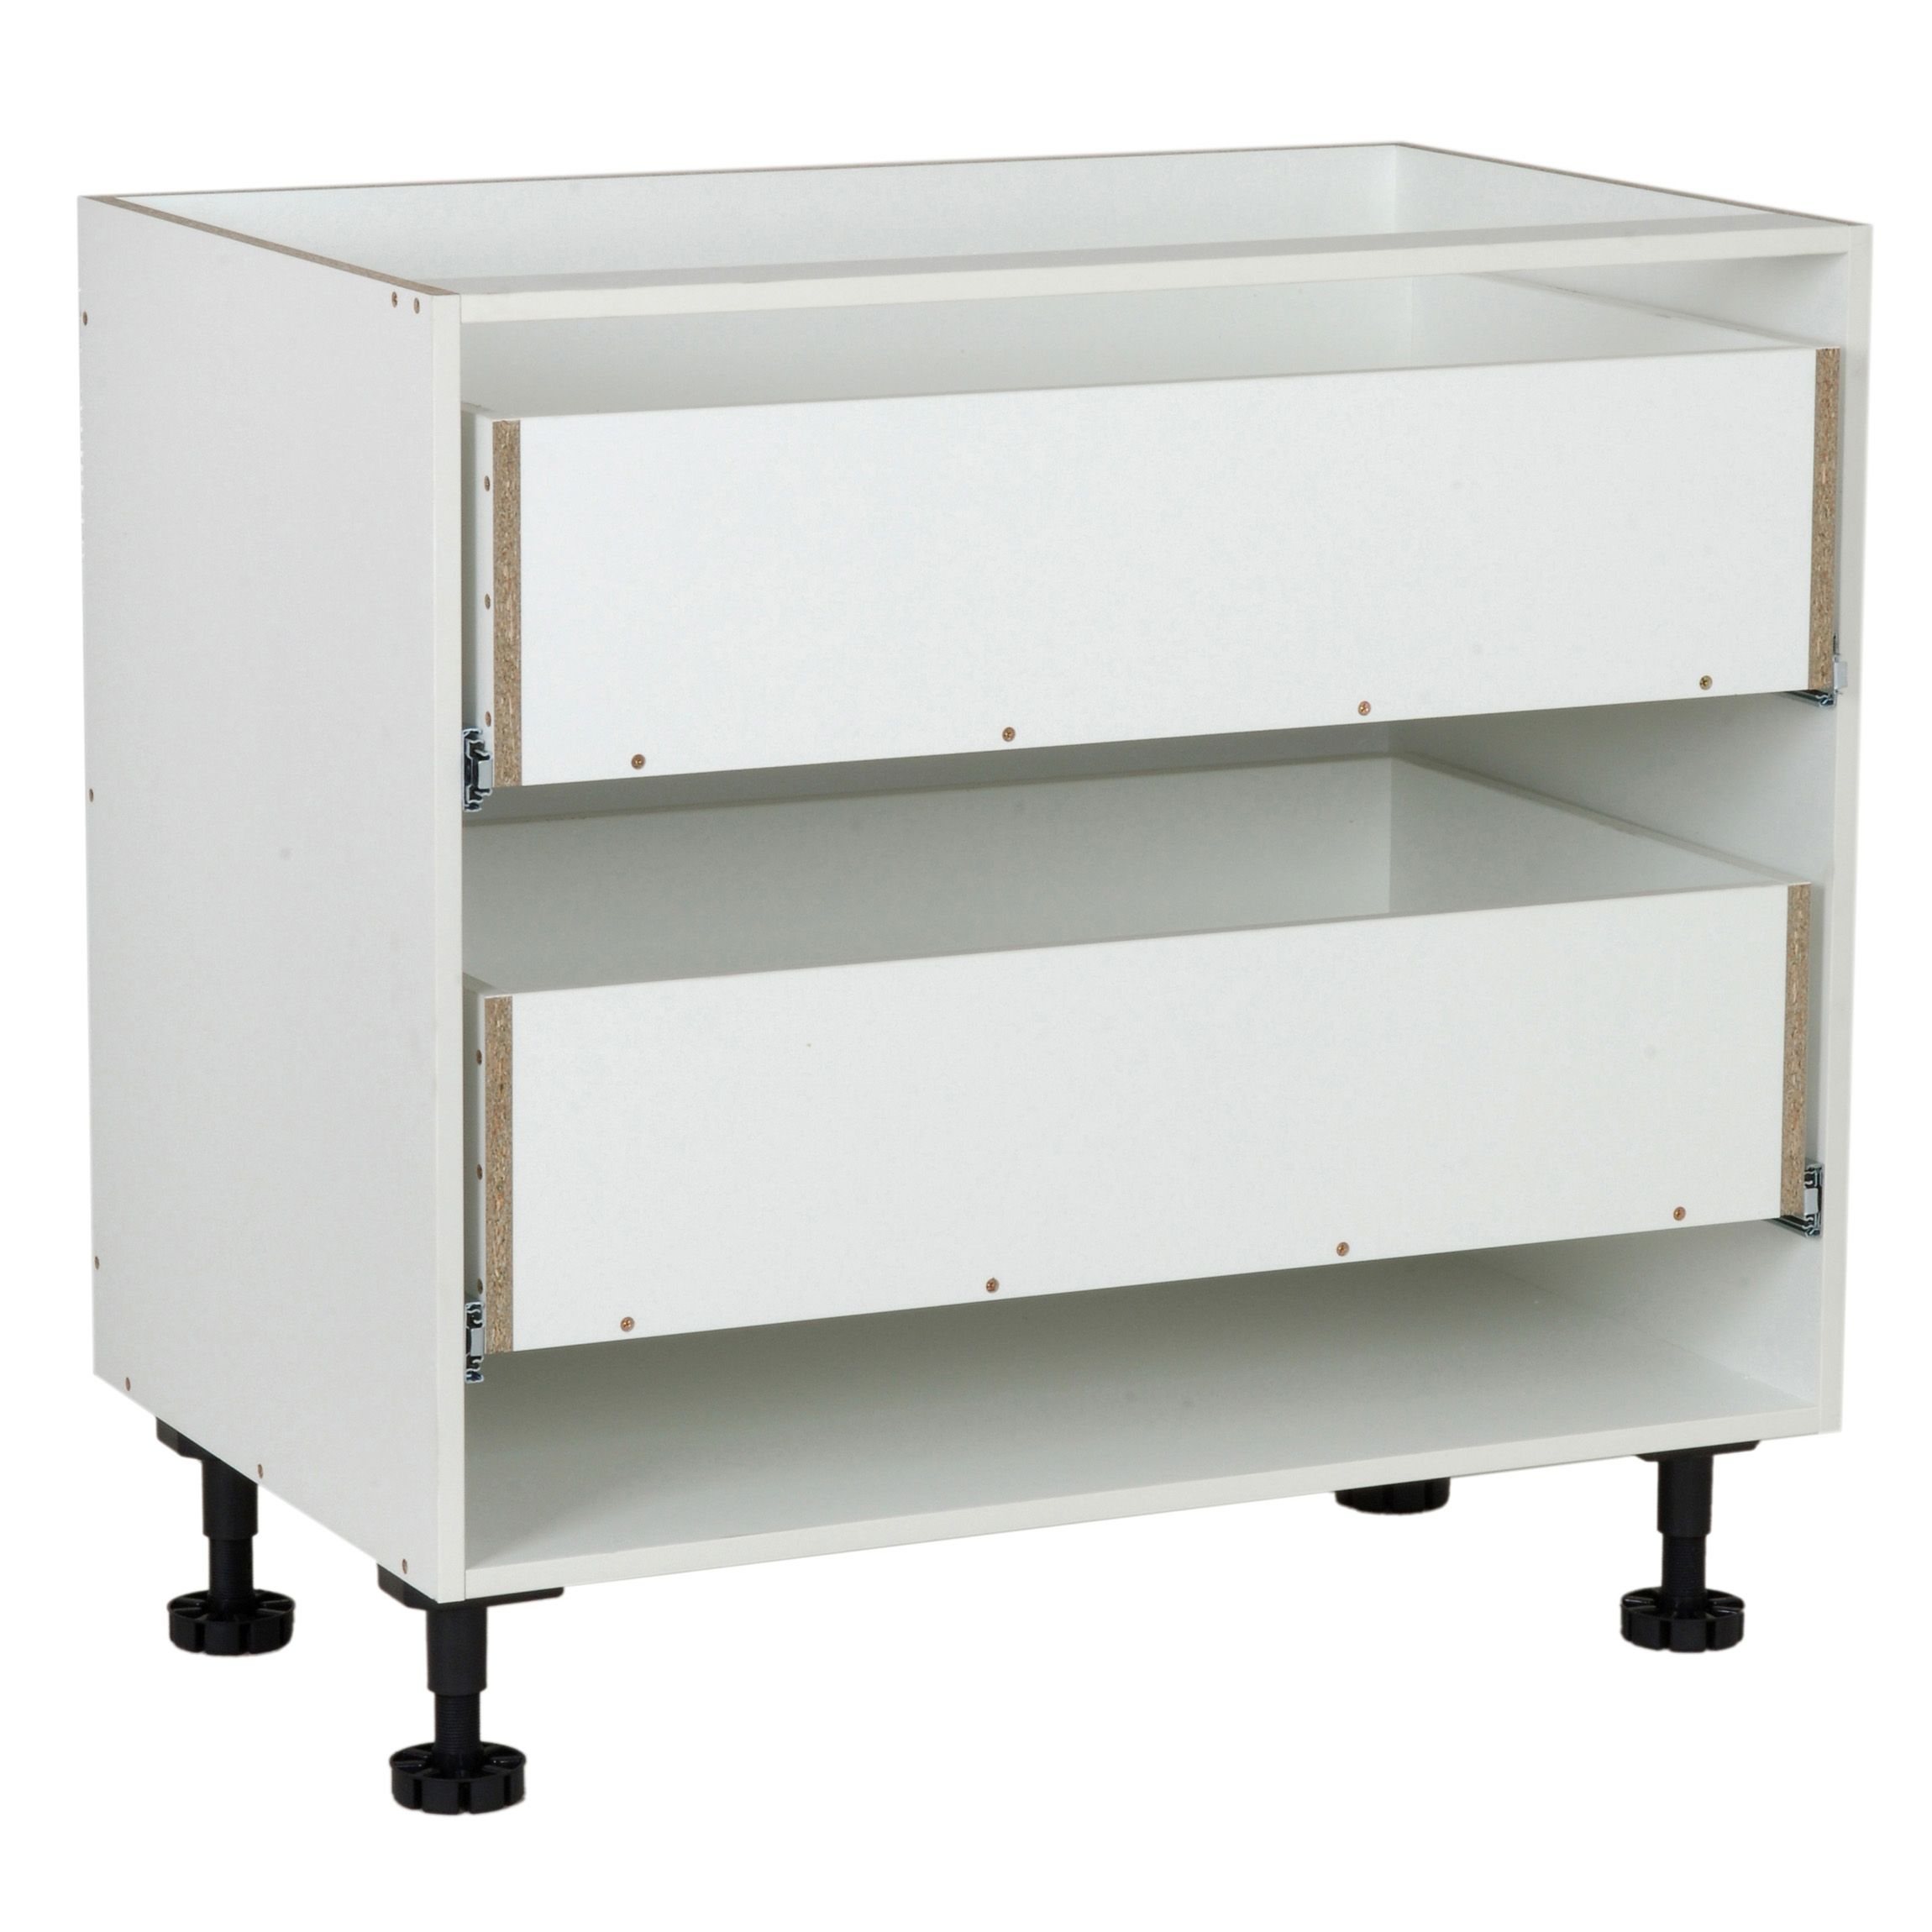 base cabinet kaboodle 900mm 2drawer w 51613 bunnings warehouse base cabinets cabinet on kaboodle kitchen bunnings drawers id=49882